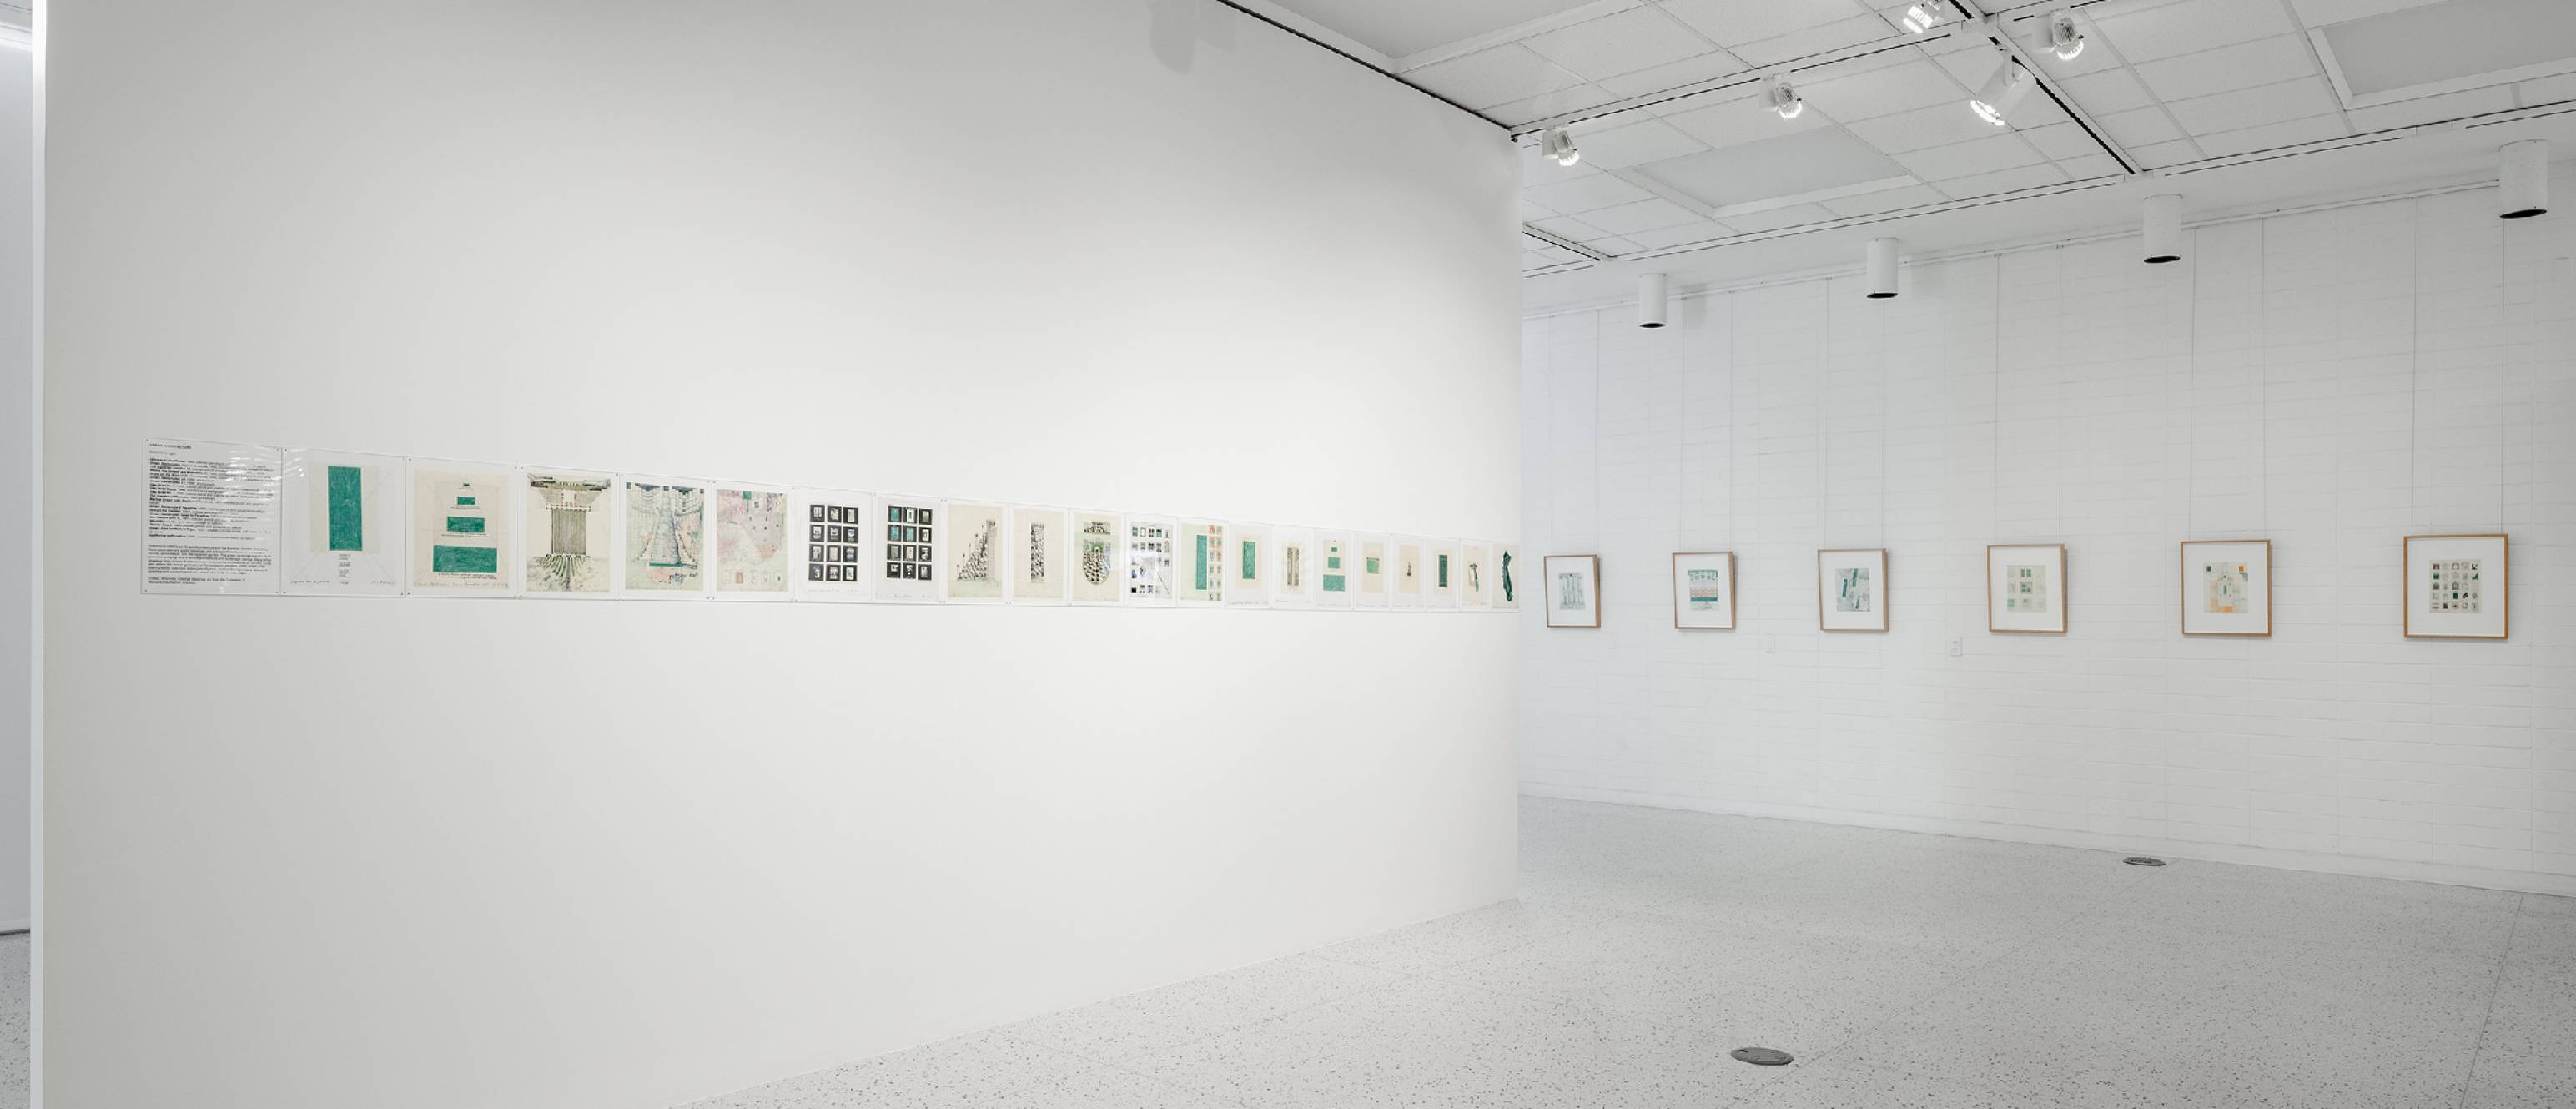 Drawings on the wall of the gallery